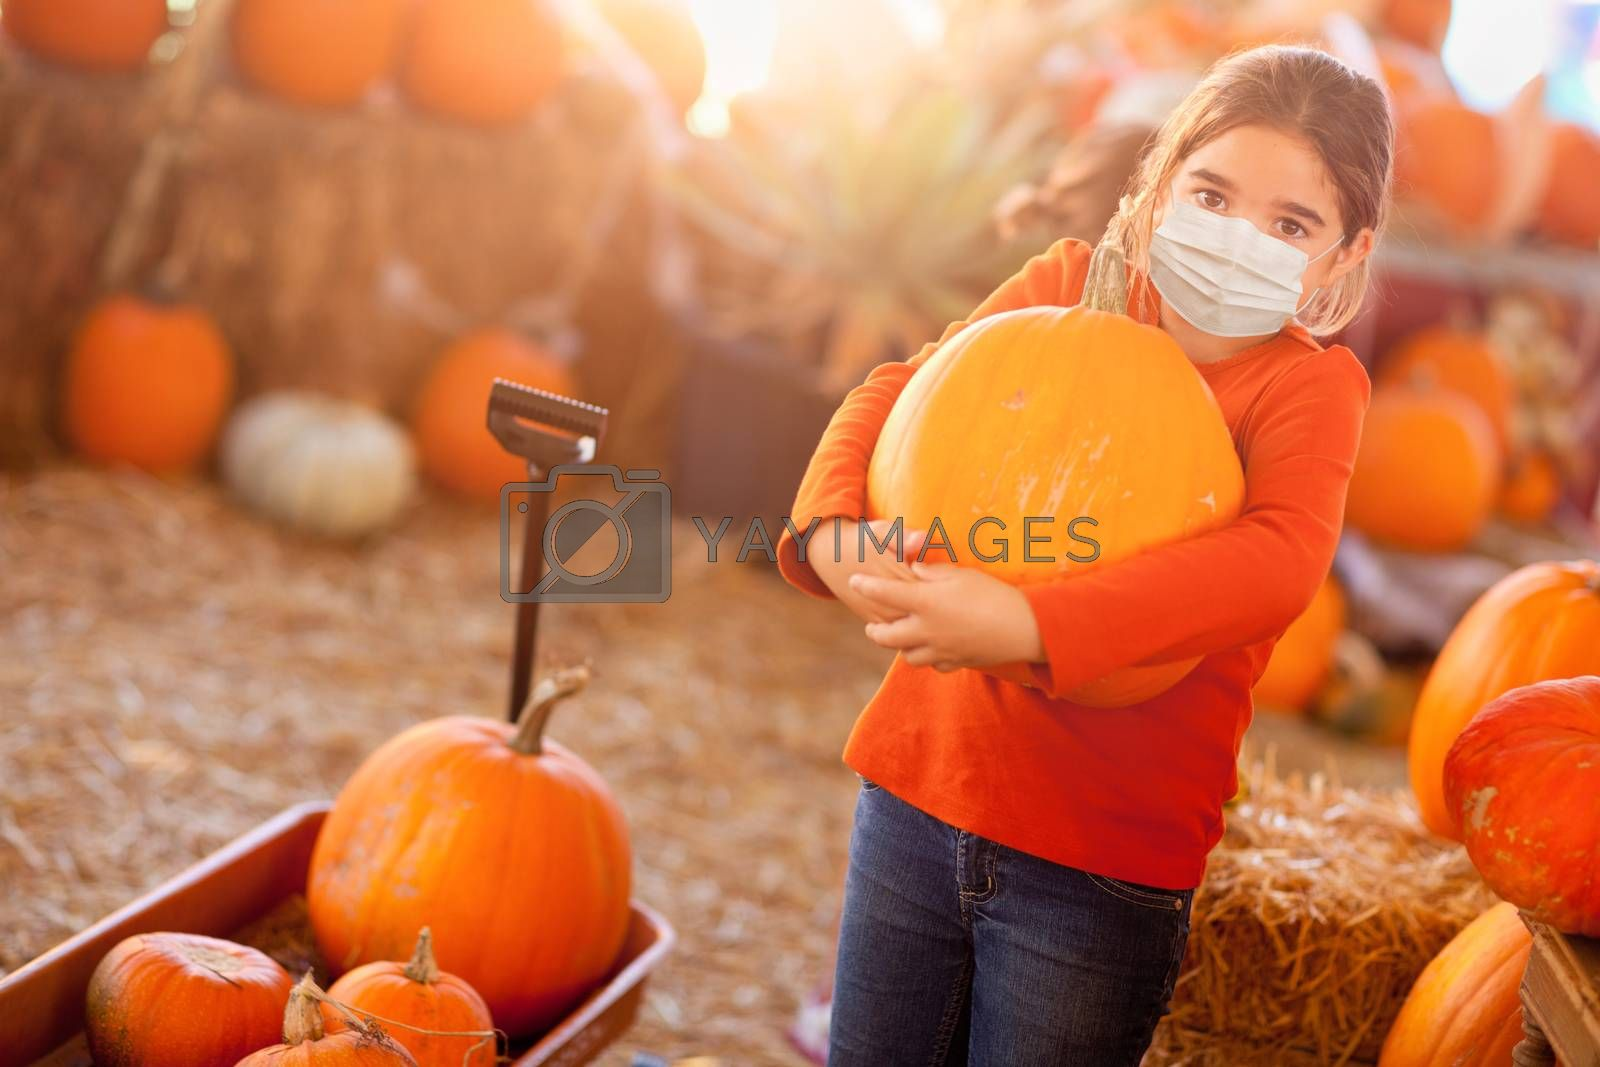 Cute Girl Choosing A Pumpkin At Pumpkin Patch Wearing Medical Fa by Feverpitched